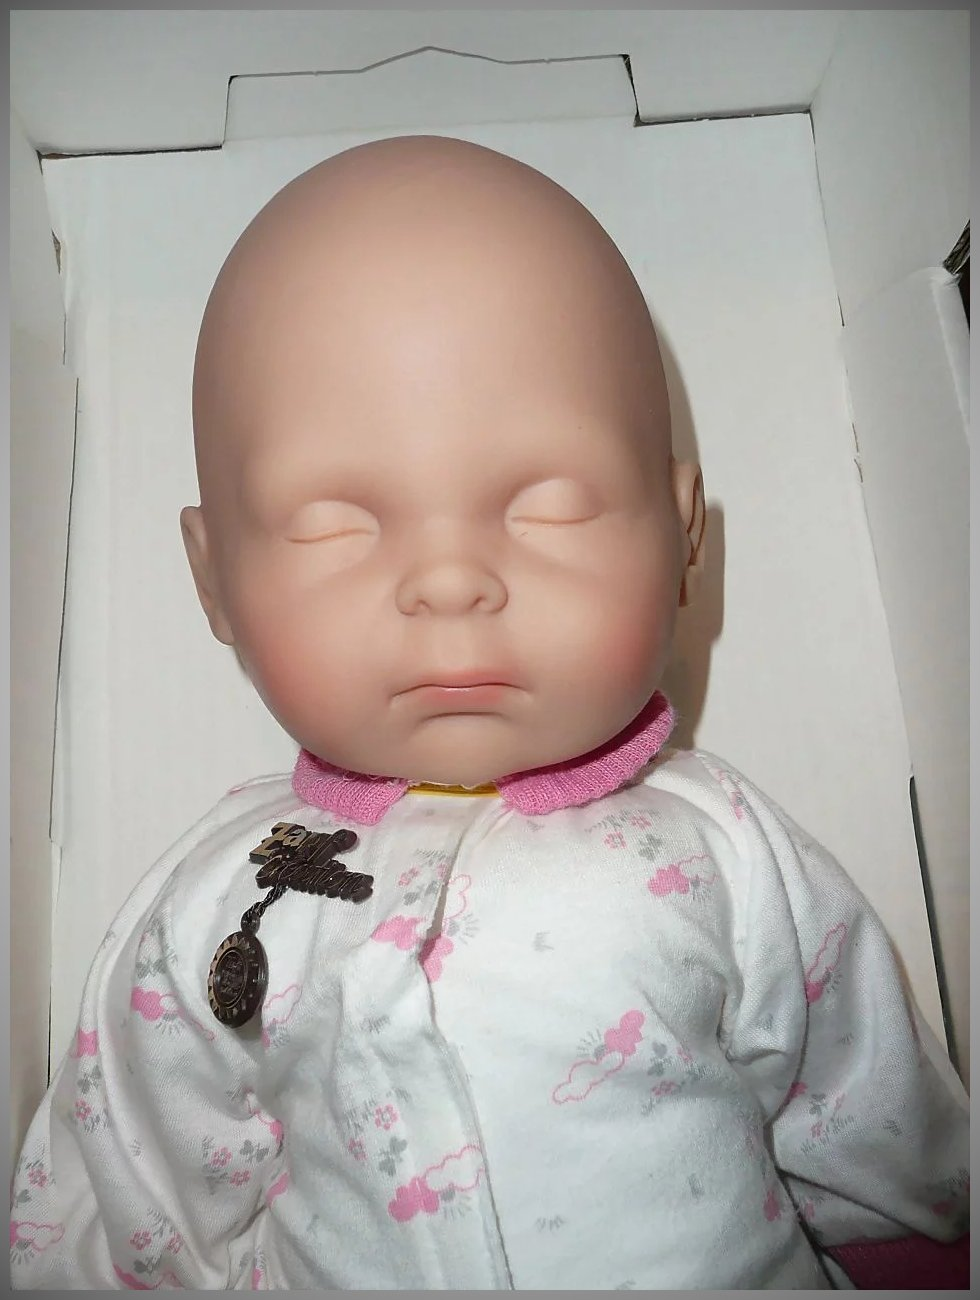 Zapf Creation Just Born Sleepy Baby Doll New In Box